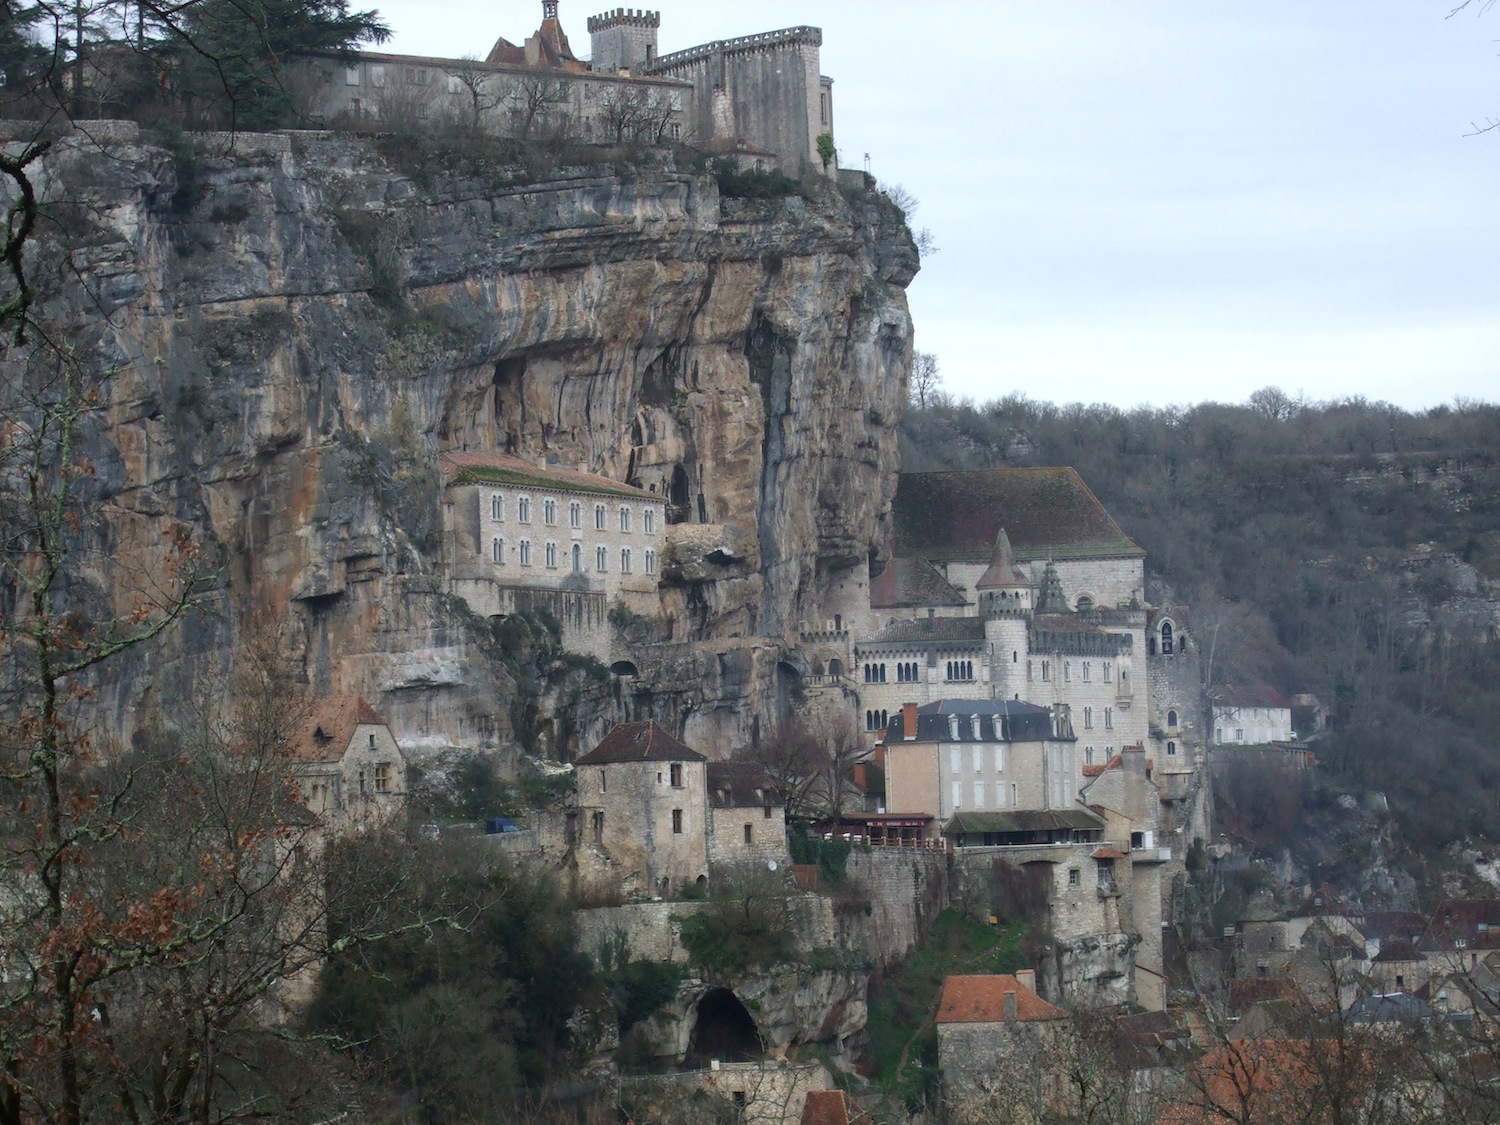 sancutaires rocamadour, visite lot incontournable